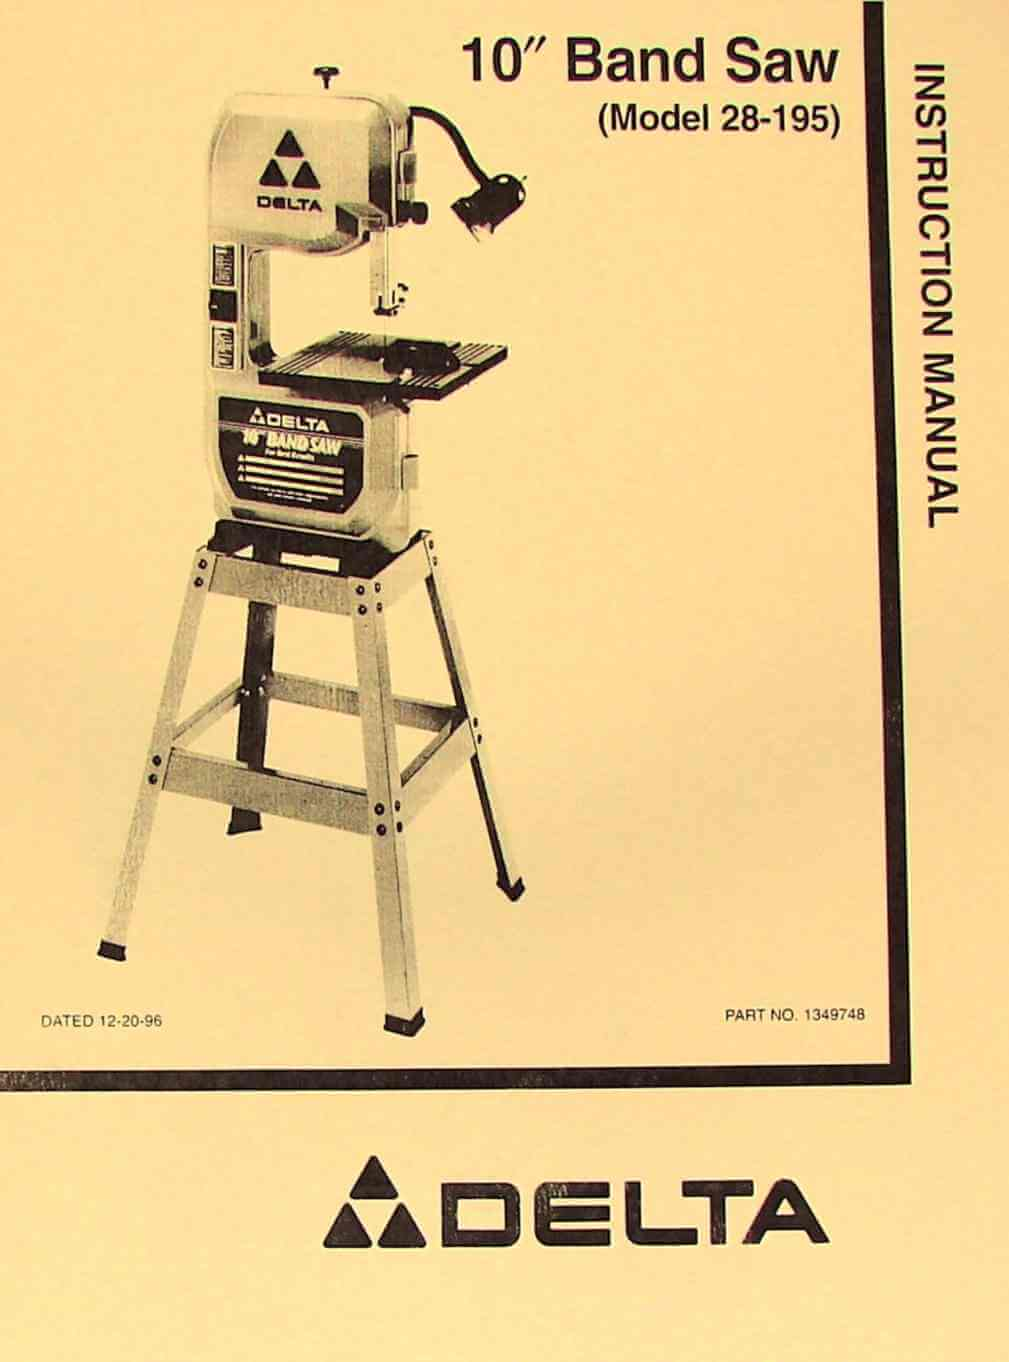 Delta 10 band saw 28 195 instructions parts manual ozark tool delta 10 band saw 28 195 instructions parts manual ozark tool manuals books greentooth Gallery